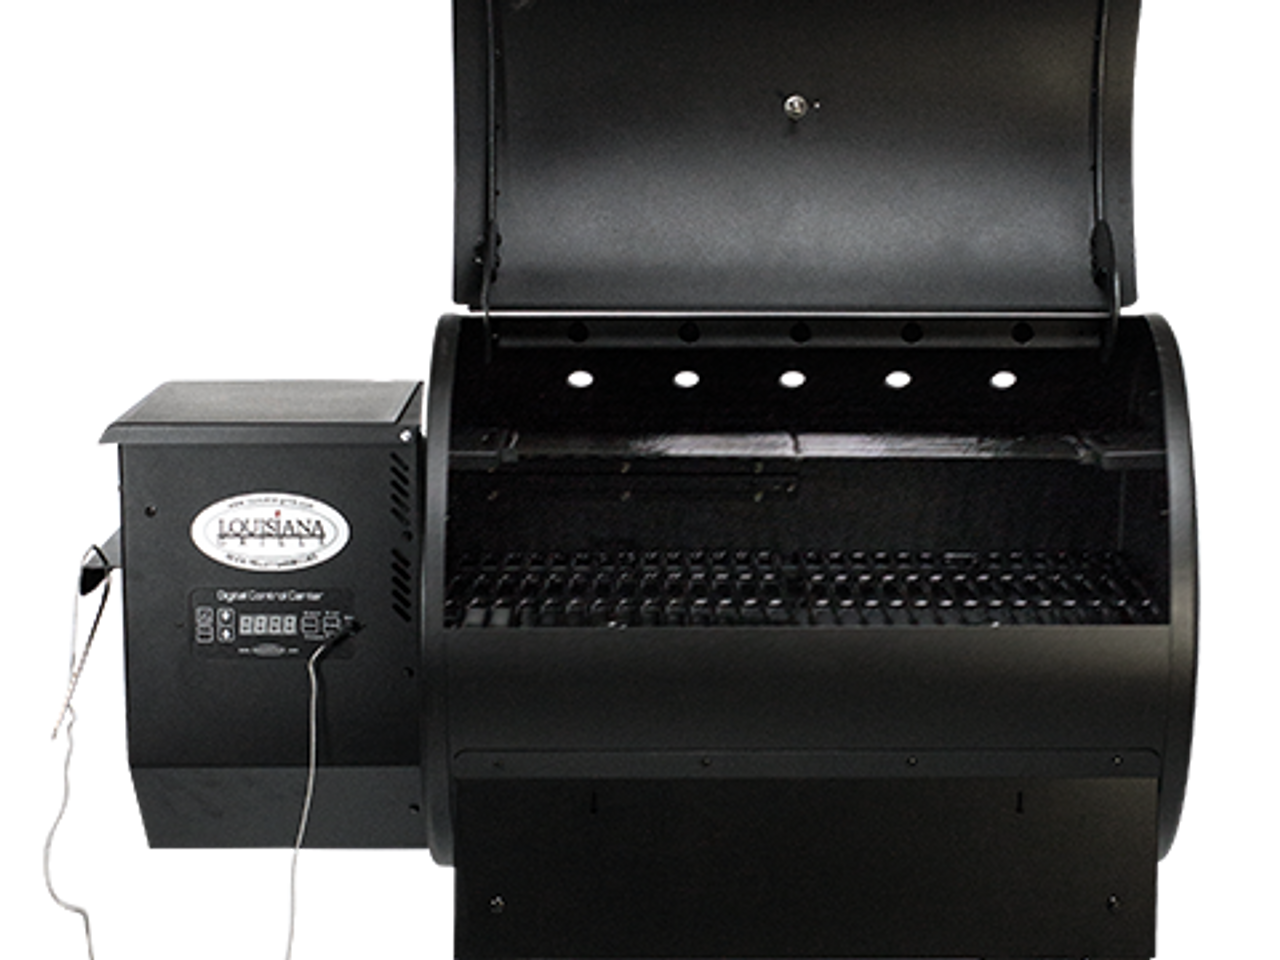 Louisiana Grills 700 Series Wood Pellet Smoker - 14 lb Hopper Capacity